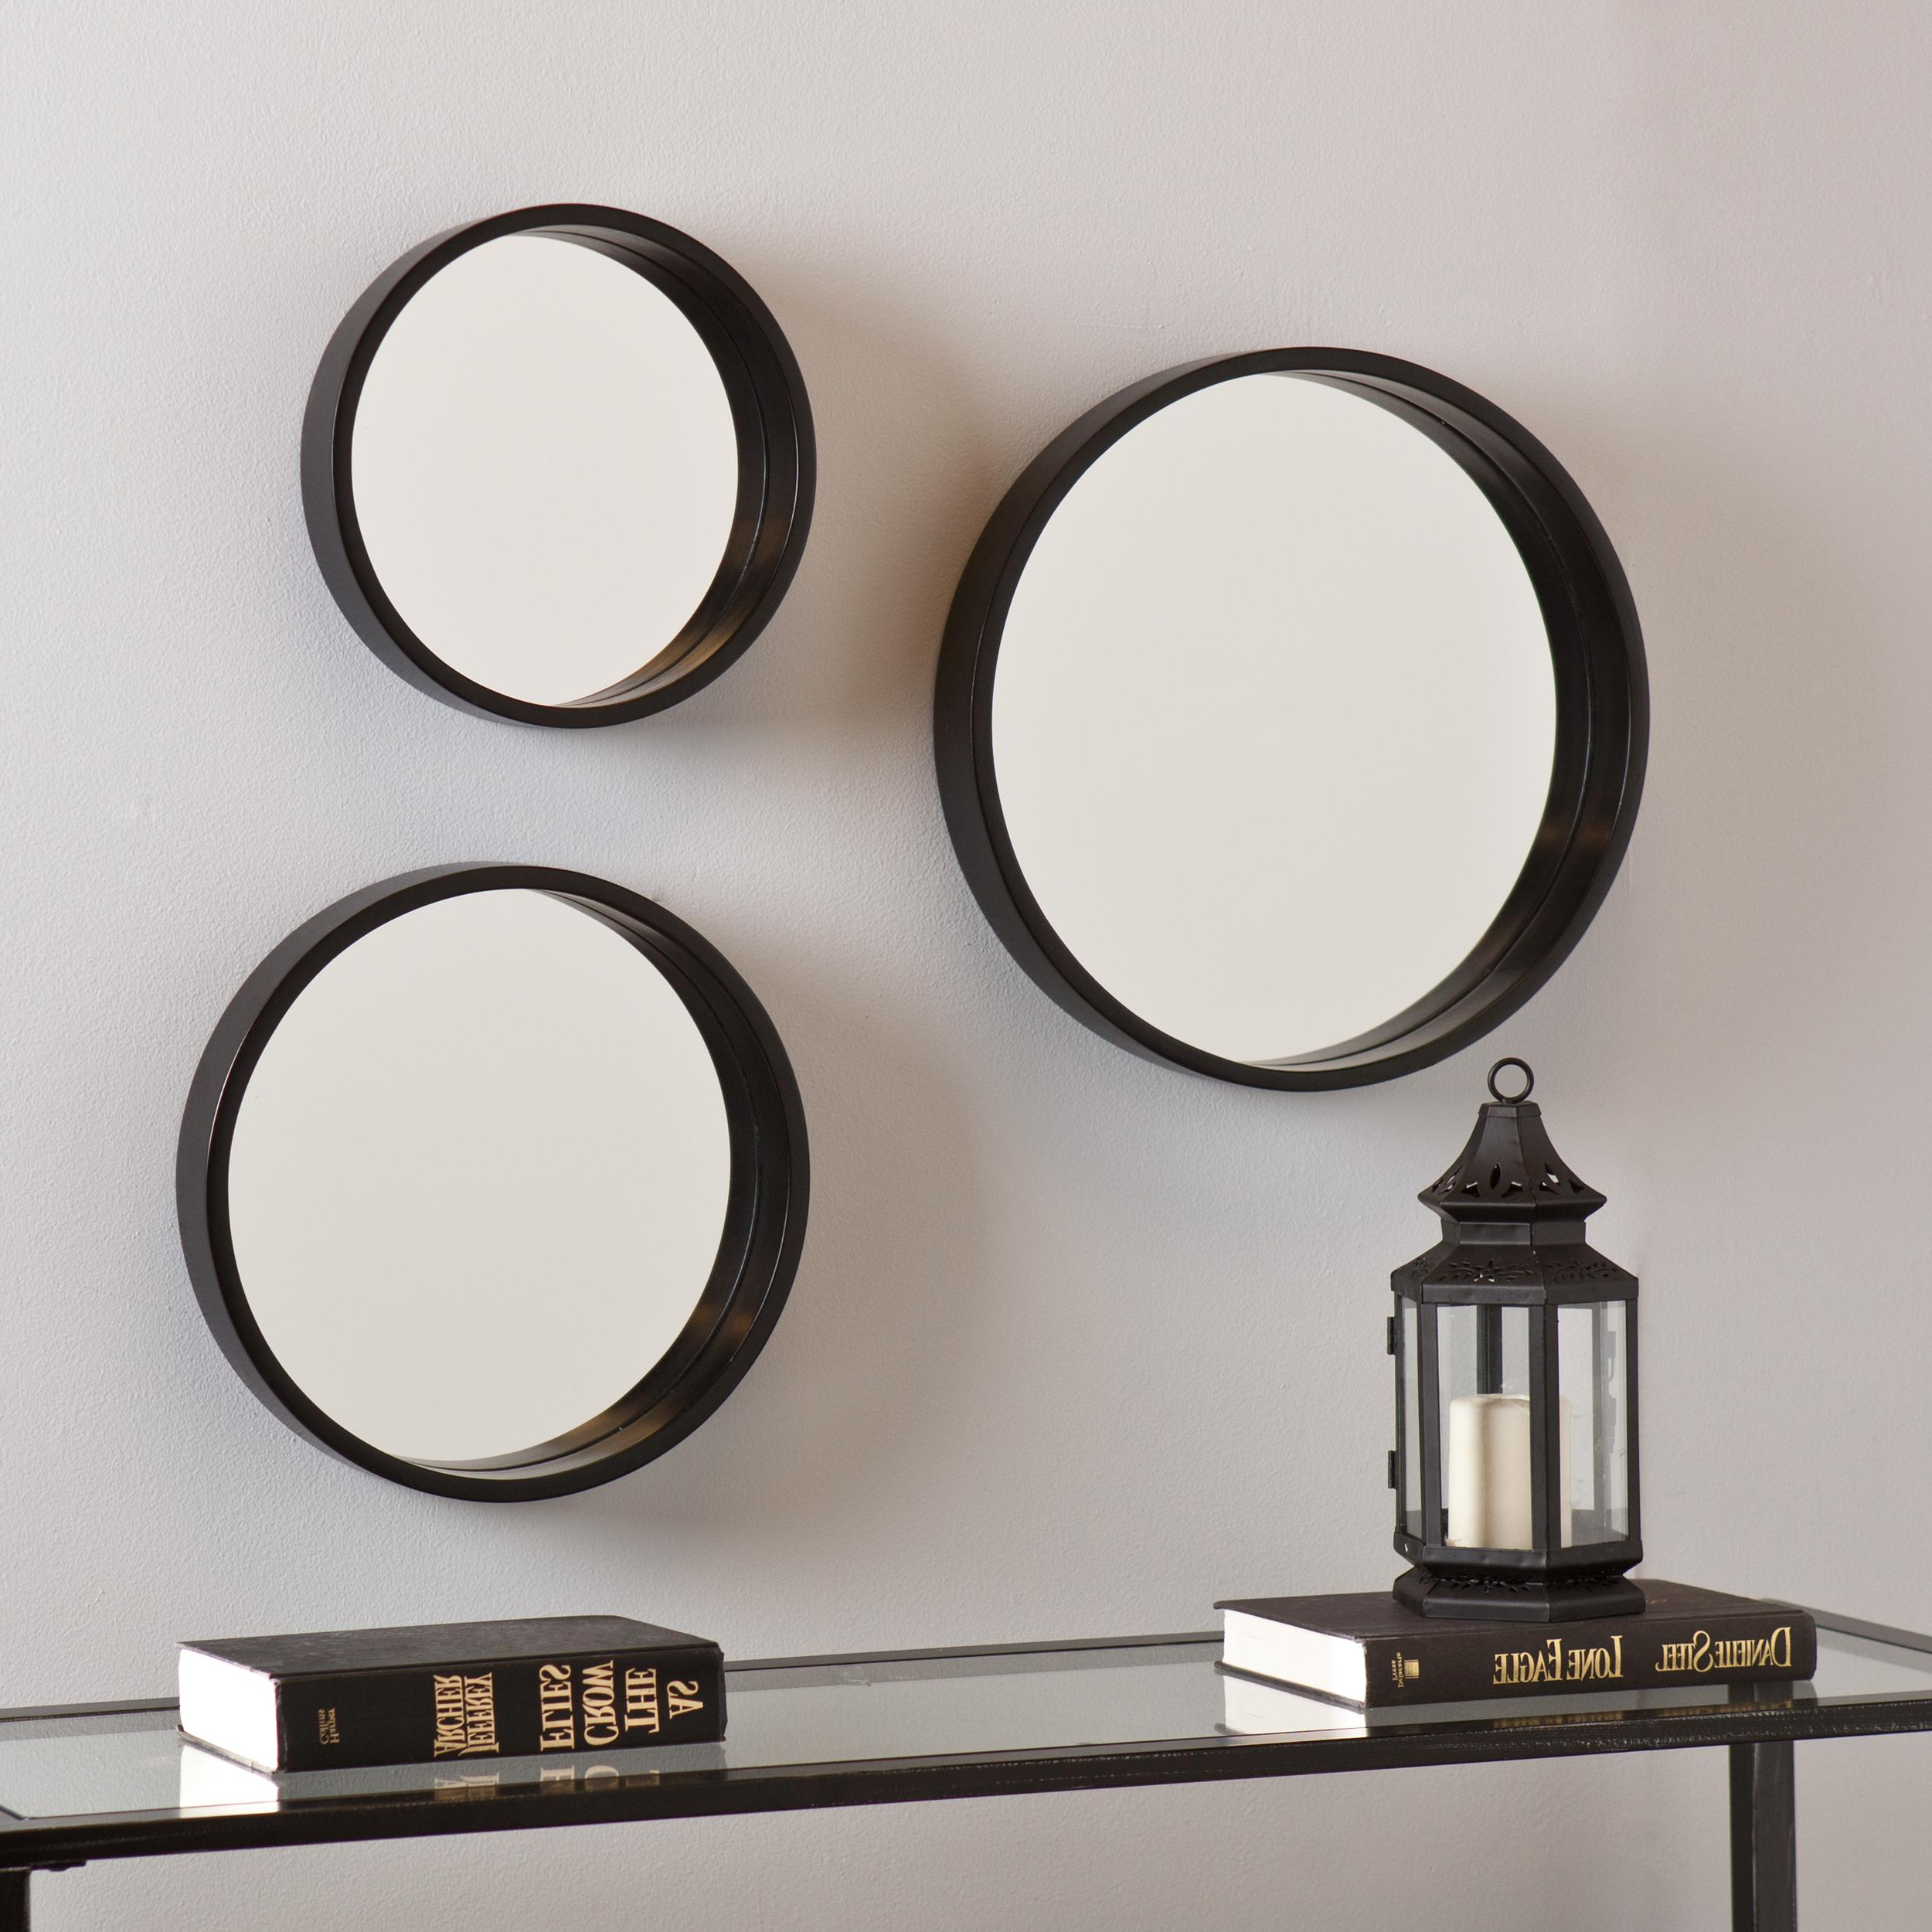 Wall Mirror Sets Of 4 Within Well Known Joyous Wall Mirror Sets In Conjunction With Antique Decorative Panel (View 4 of 20)